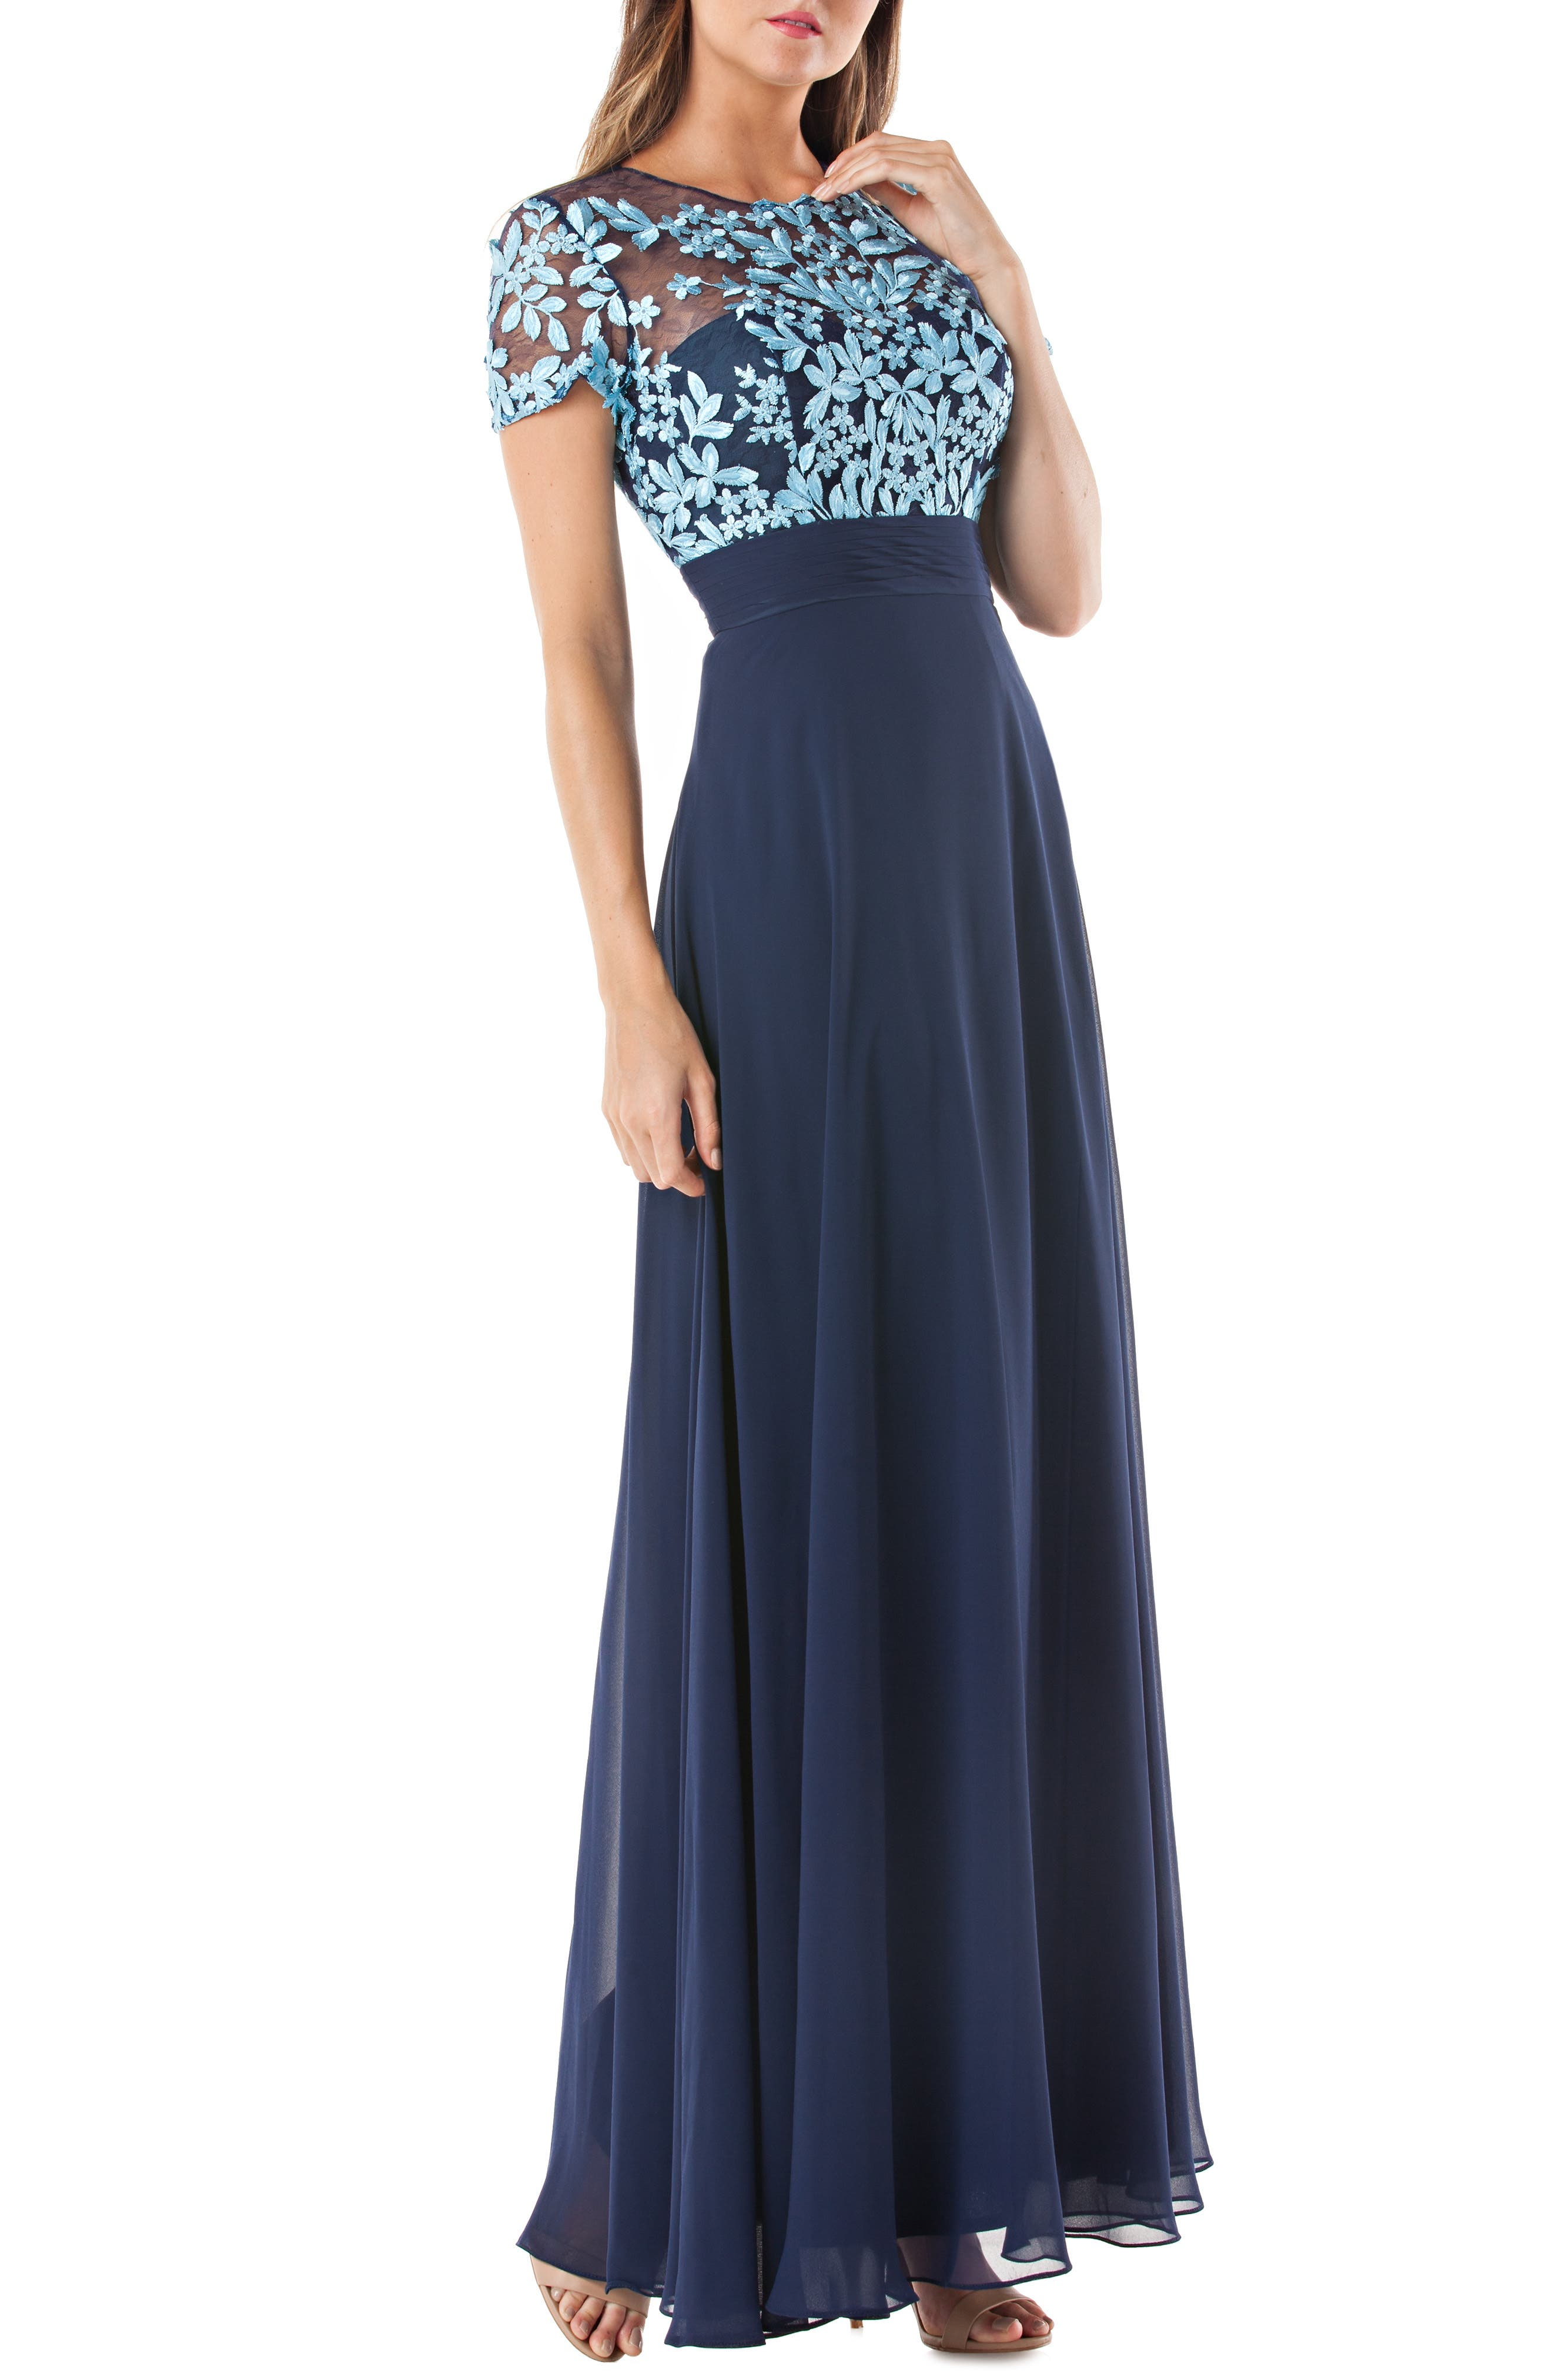 Js Collections Embroidered Illusion Bodice Gown, Blue